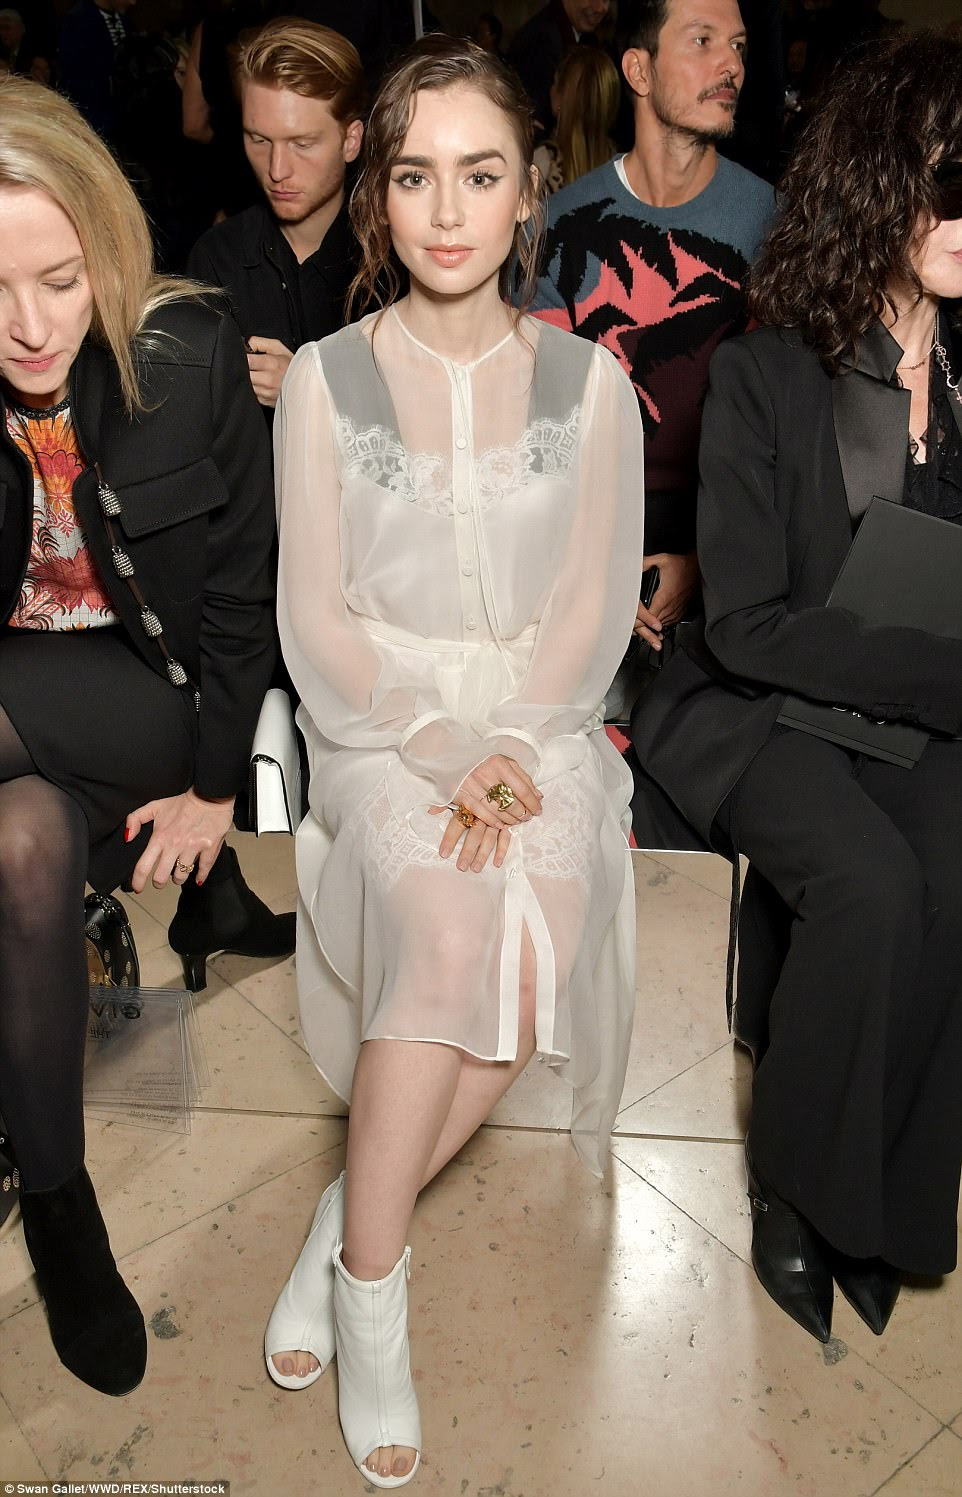 Underwear as outerwear: Model Lily Collins meanwhile proved her flair for high-fashion in a Victoriana-inspired white chiffon shirt dress, layered atop a delicate lace silk slip